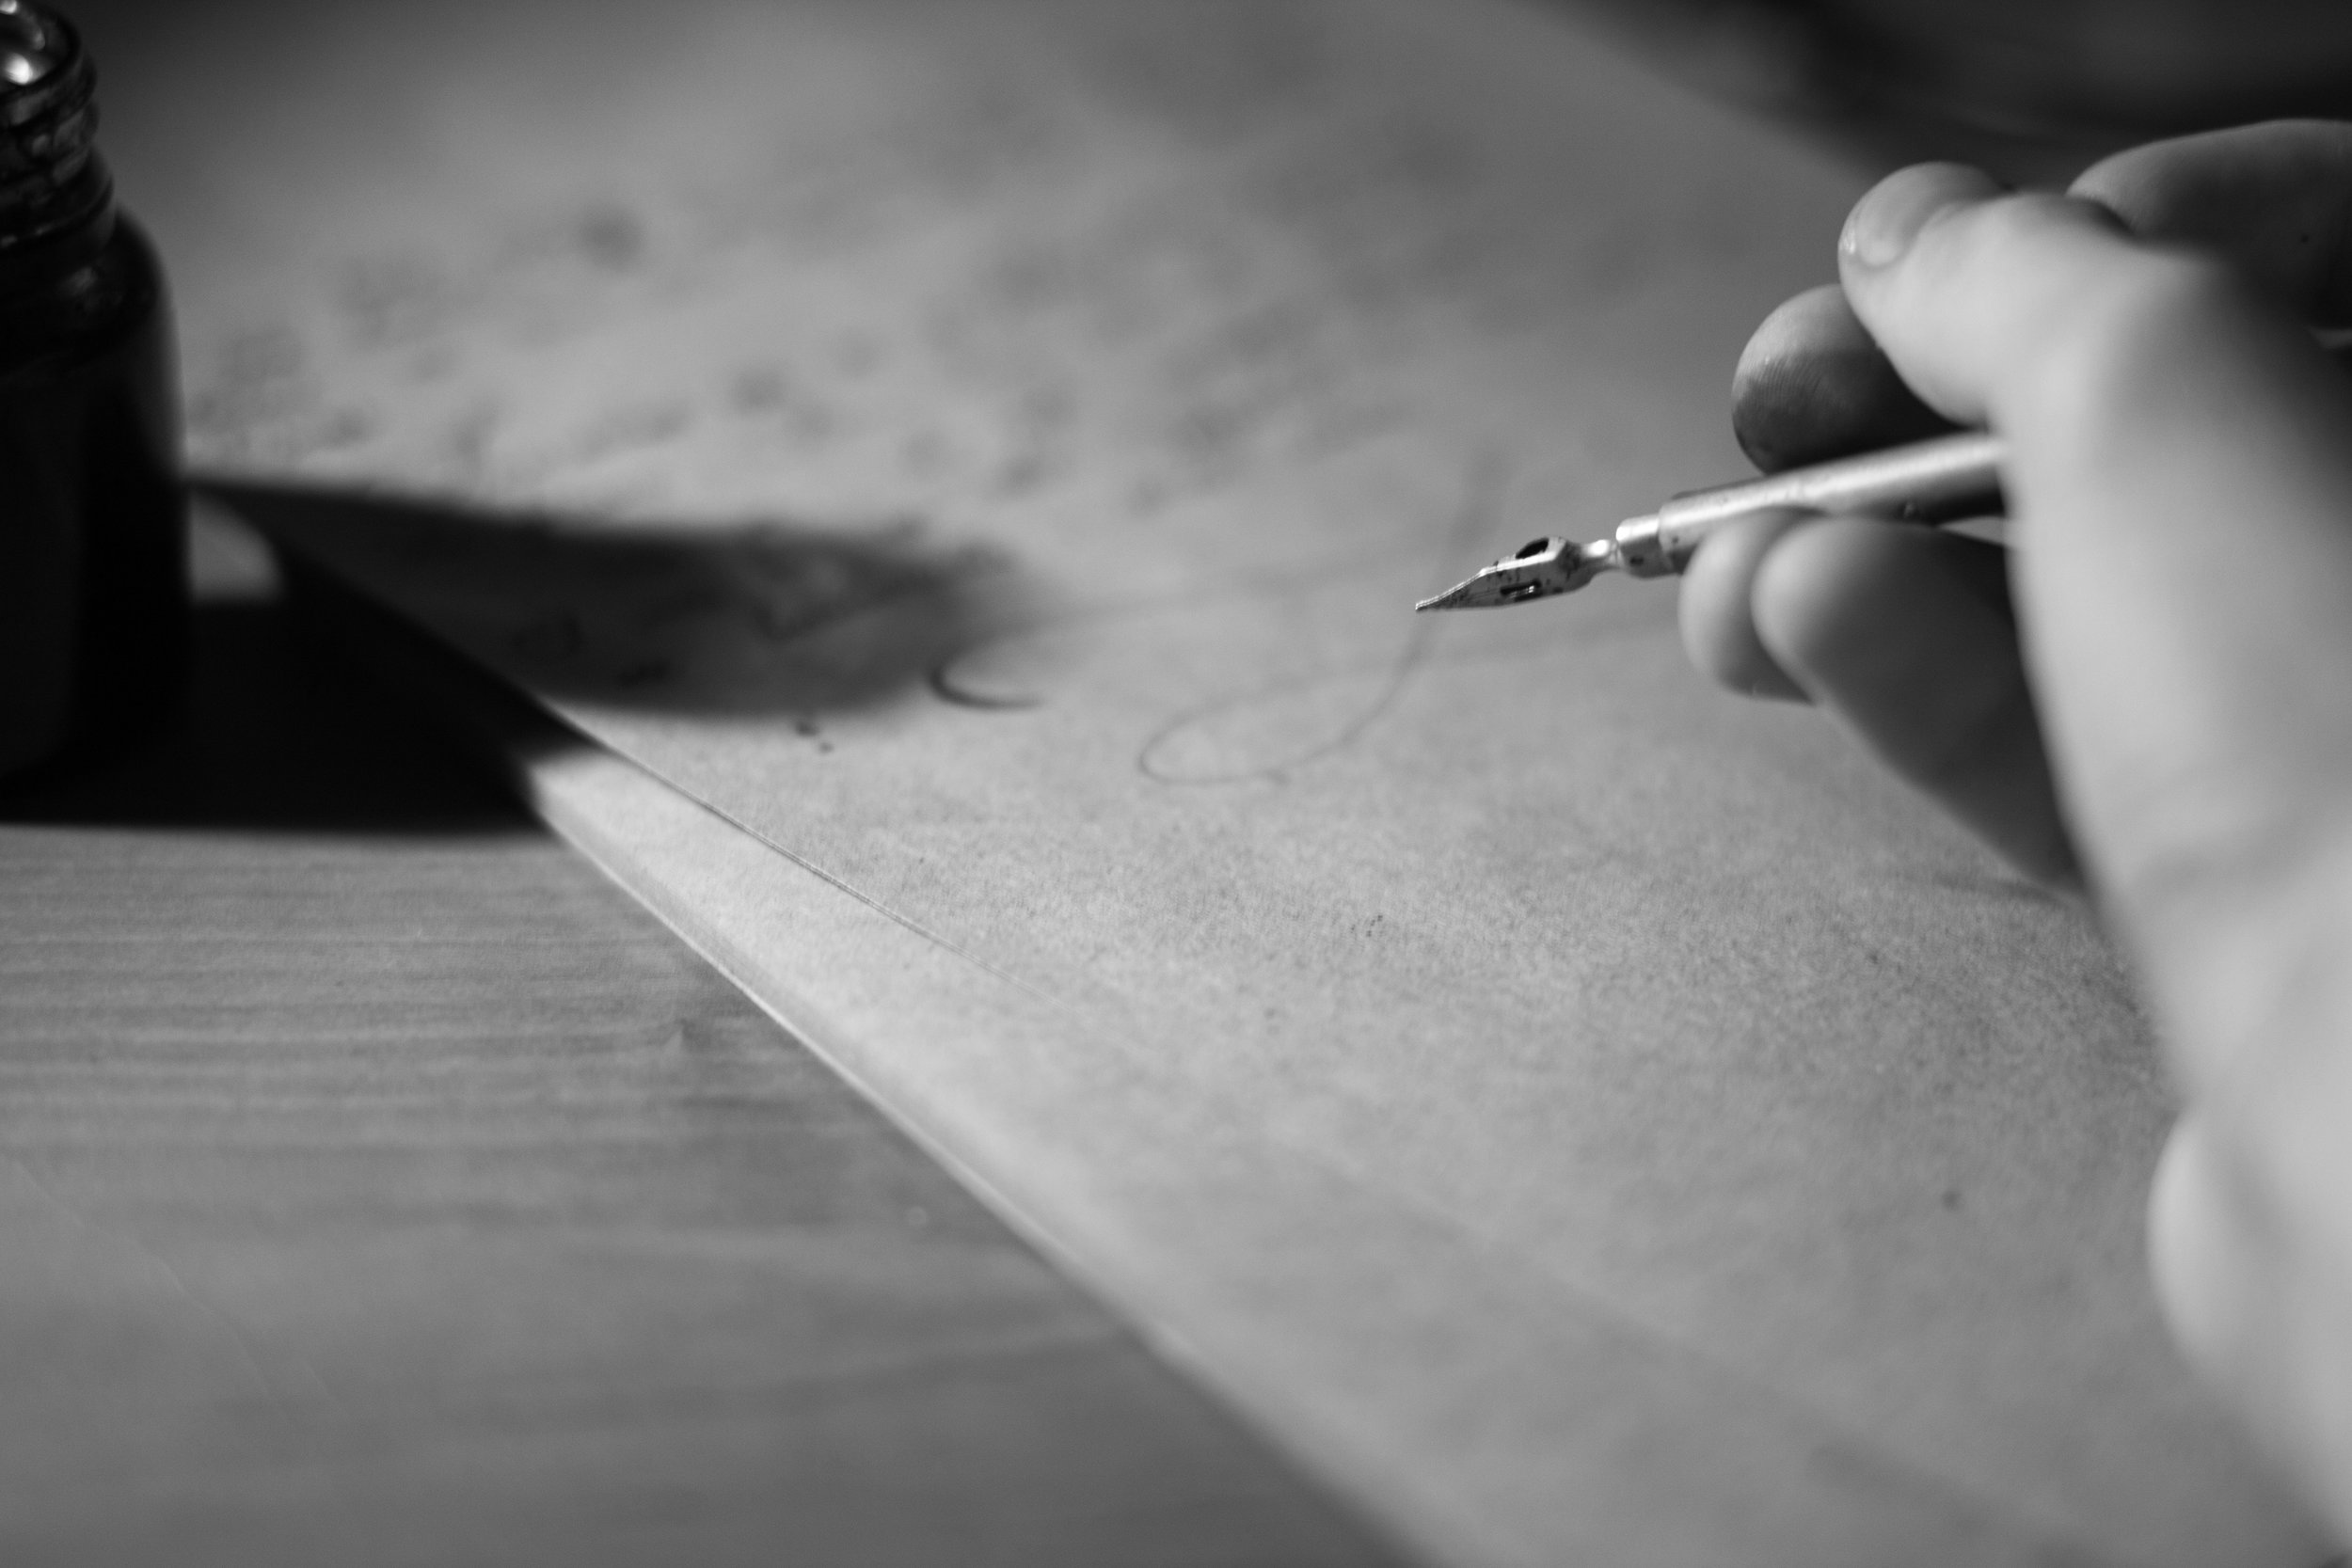 A hand writing a letter with a quill